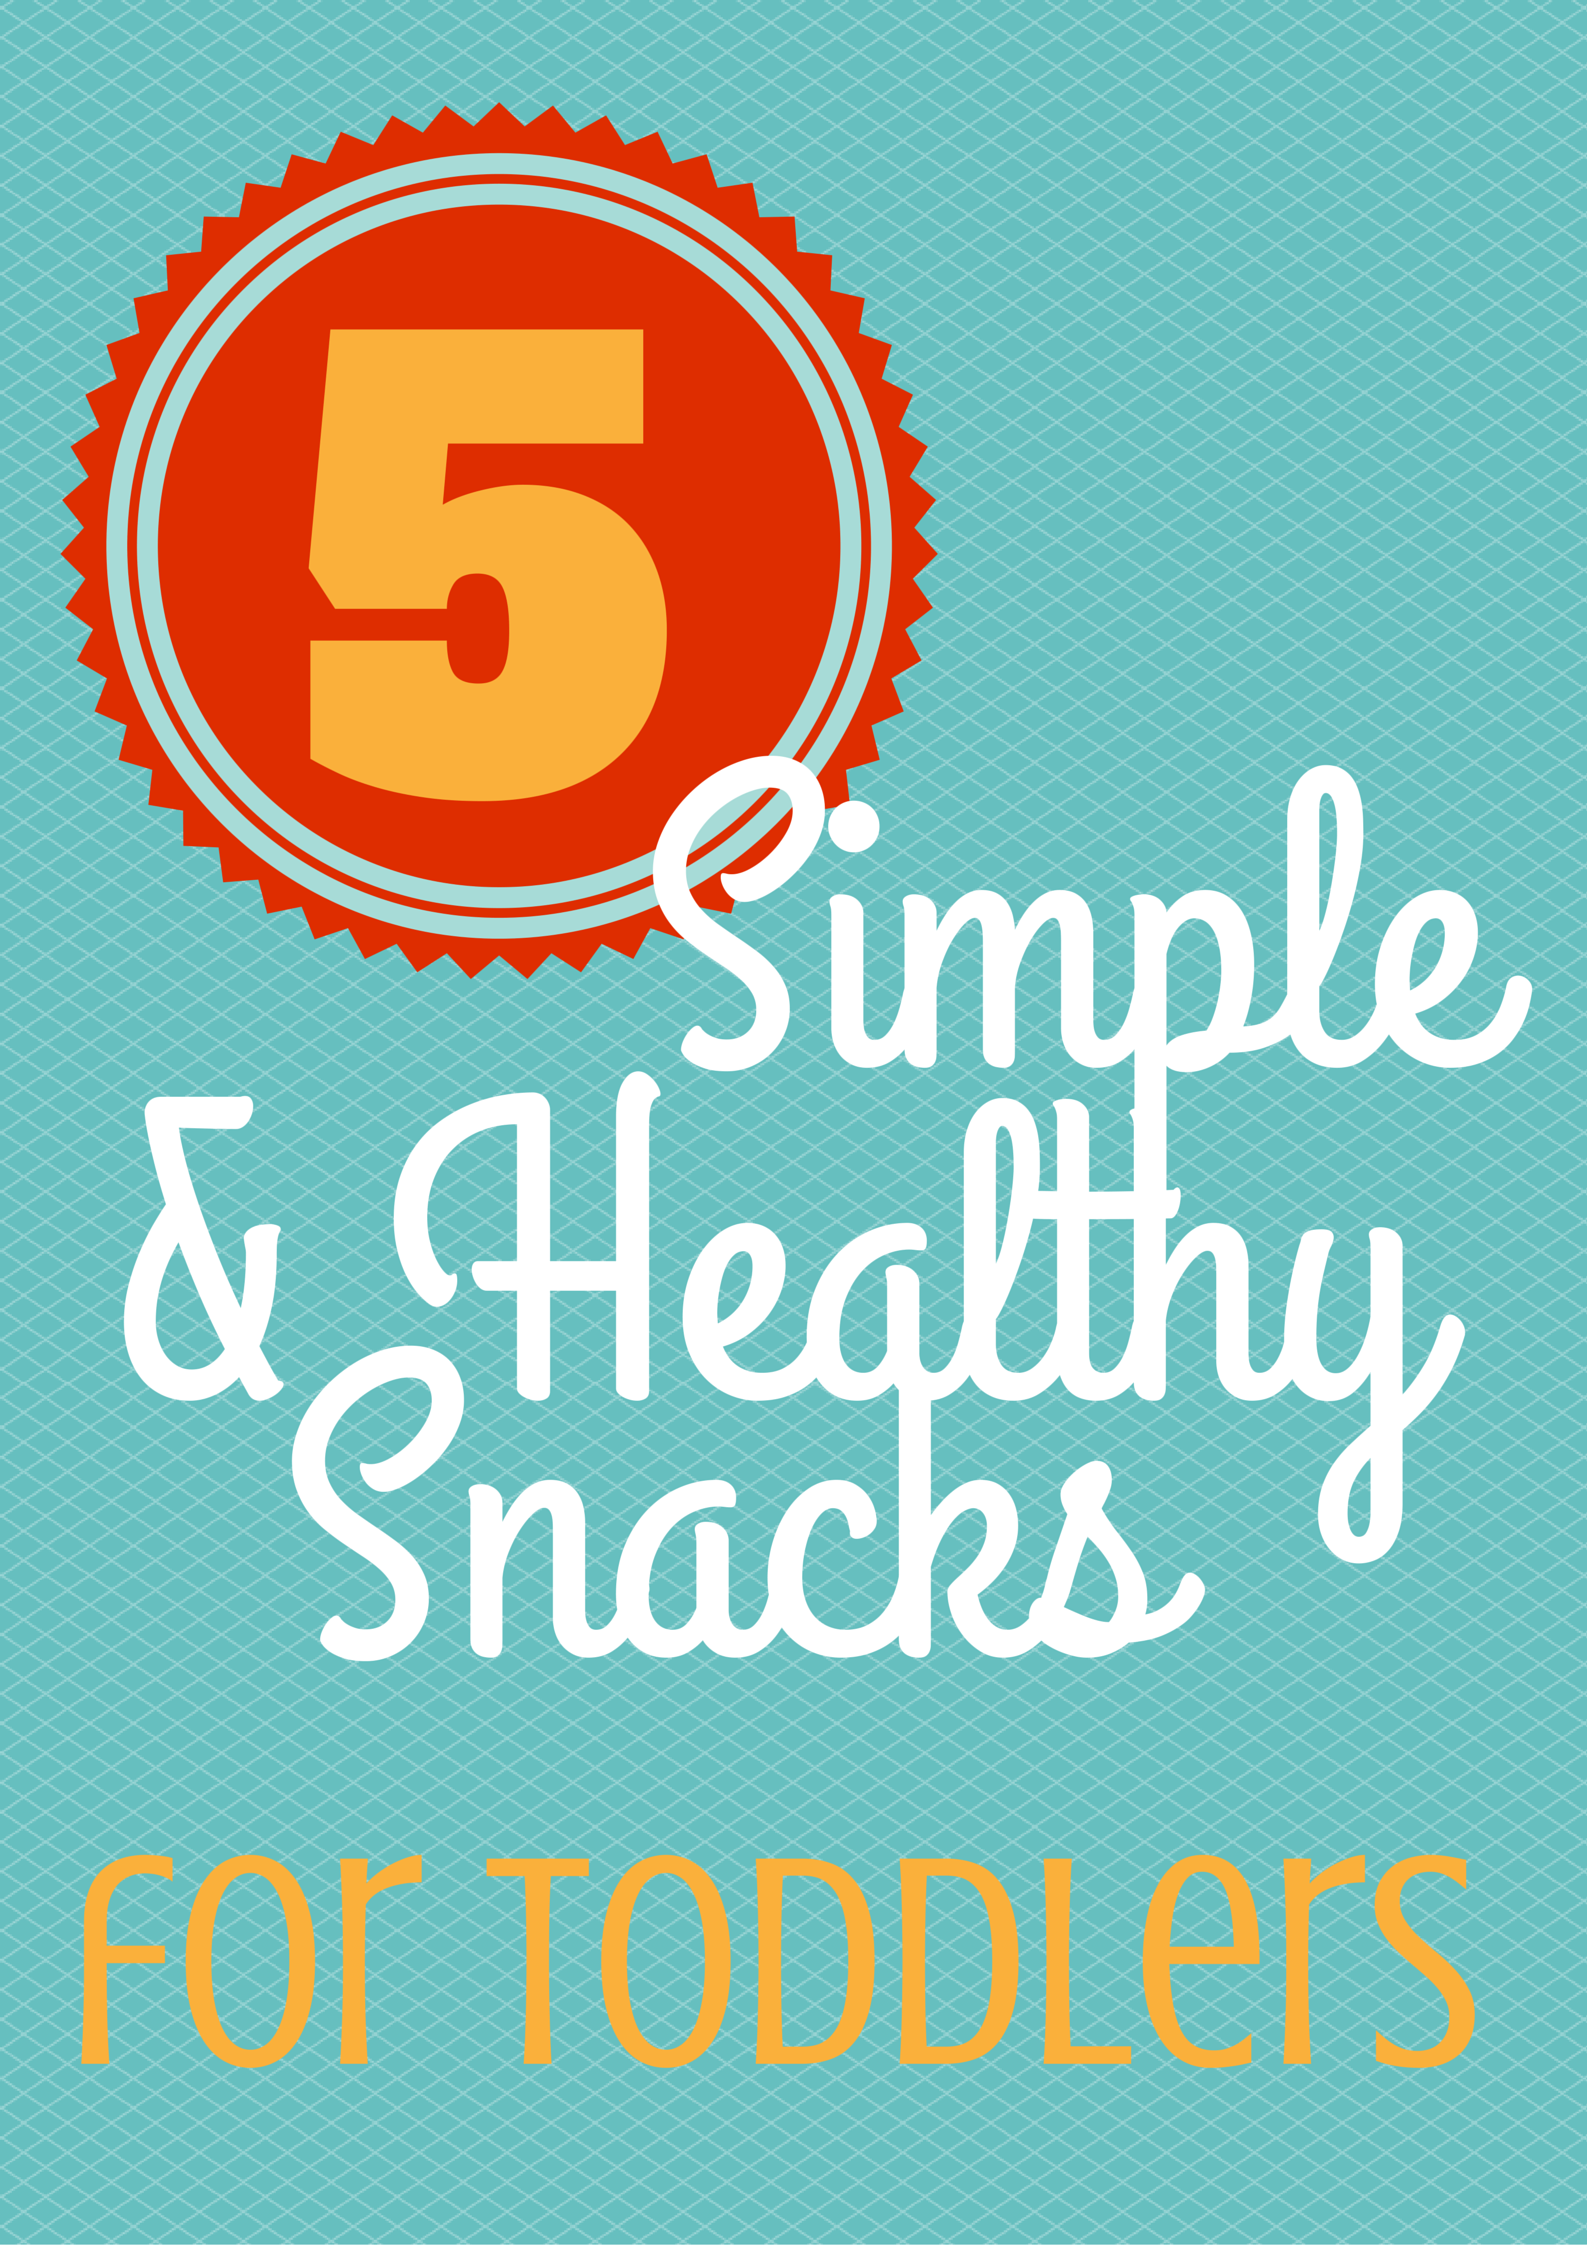 5 Snacks for Toddlers #DairyPure #PureandSimple #ad